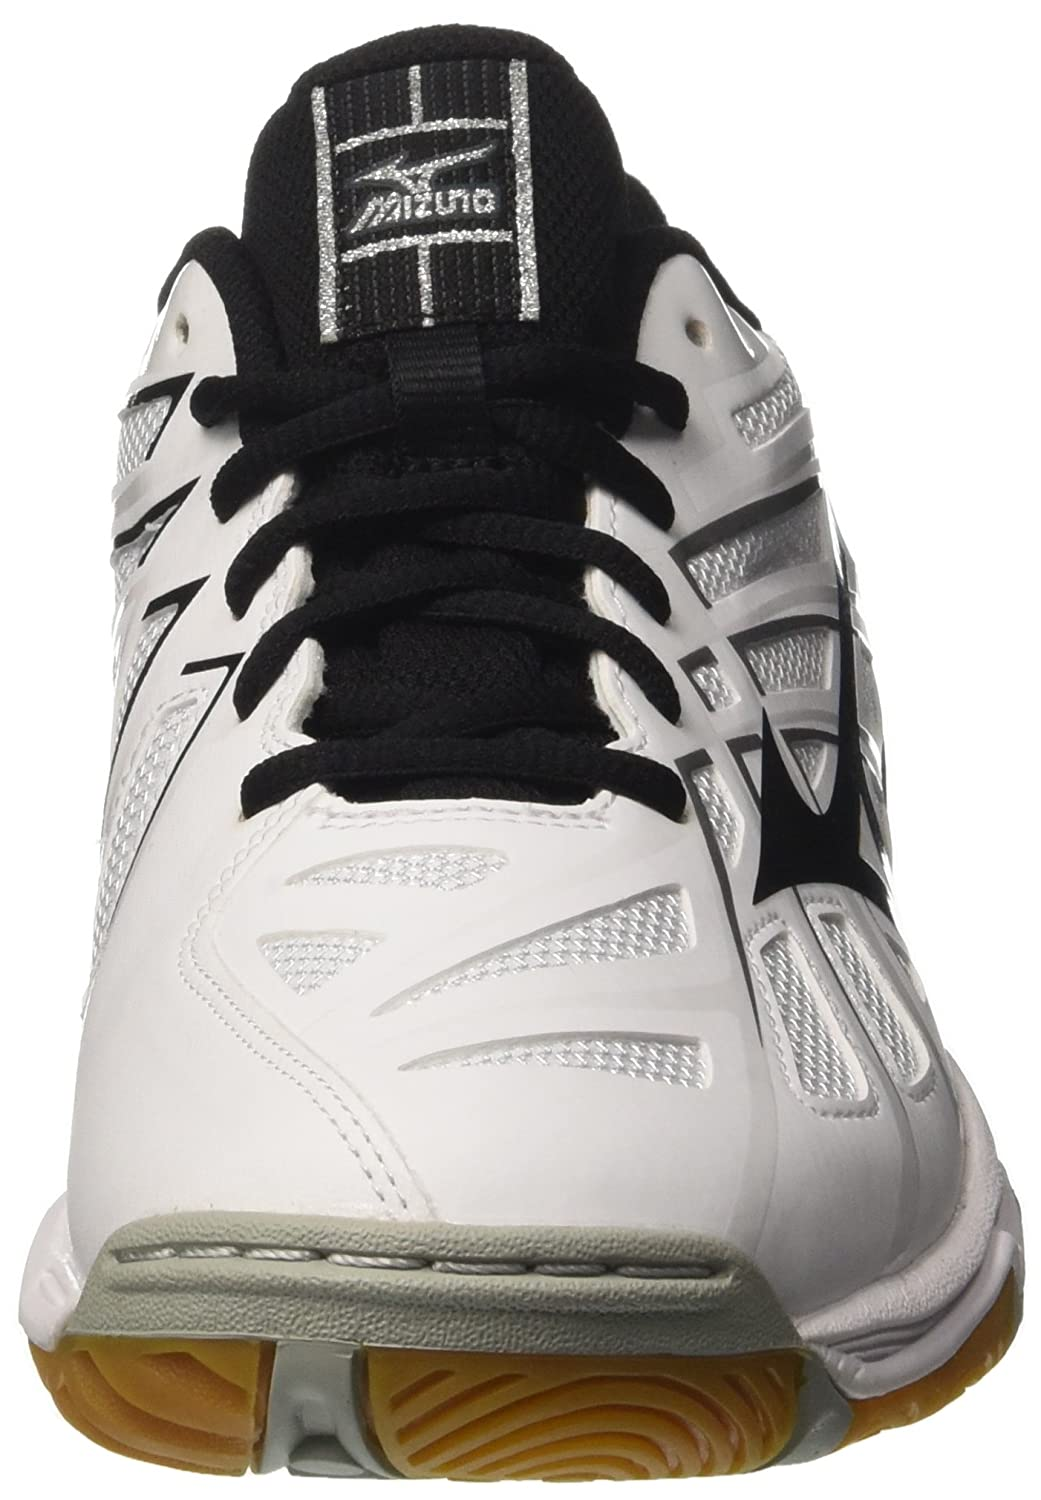 4a111f7175c08 Mizuno Men s Wave Hurricane Volleyball Shoes  Amazon.co.uk  Shoes   Bags